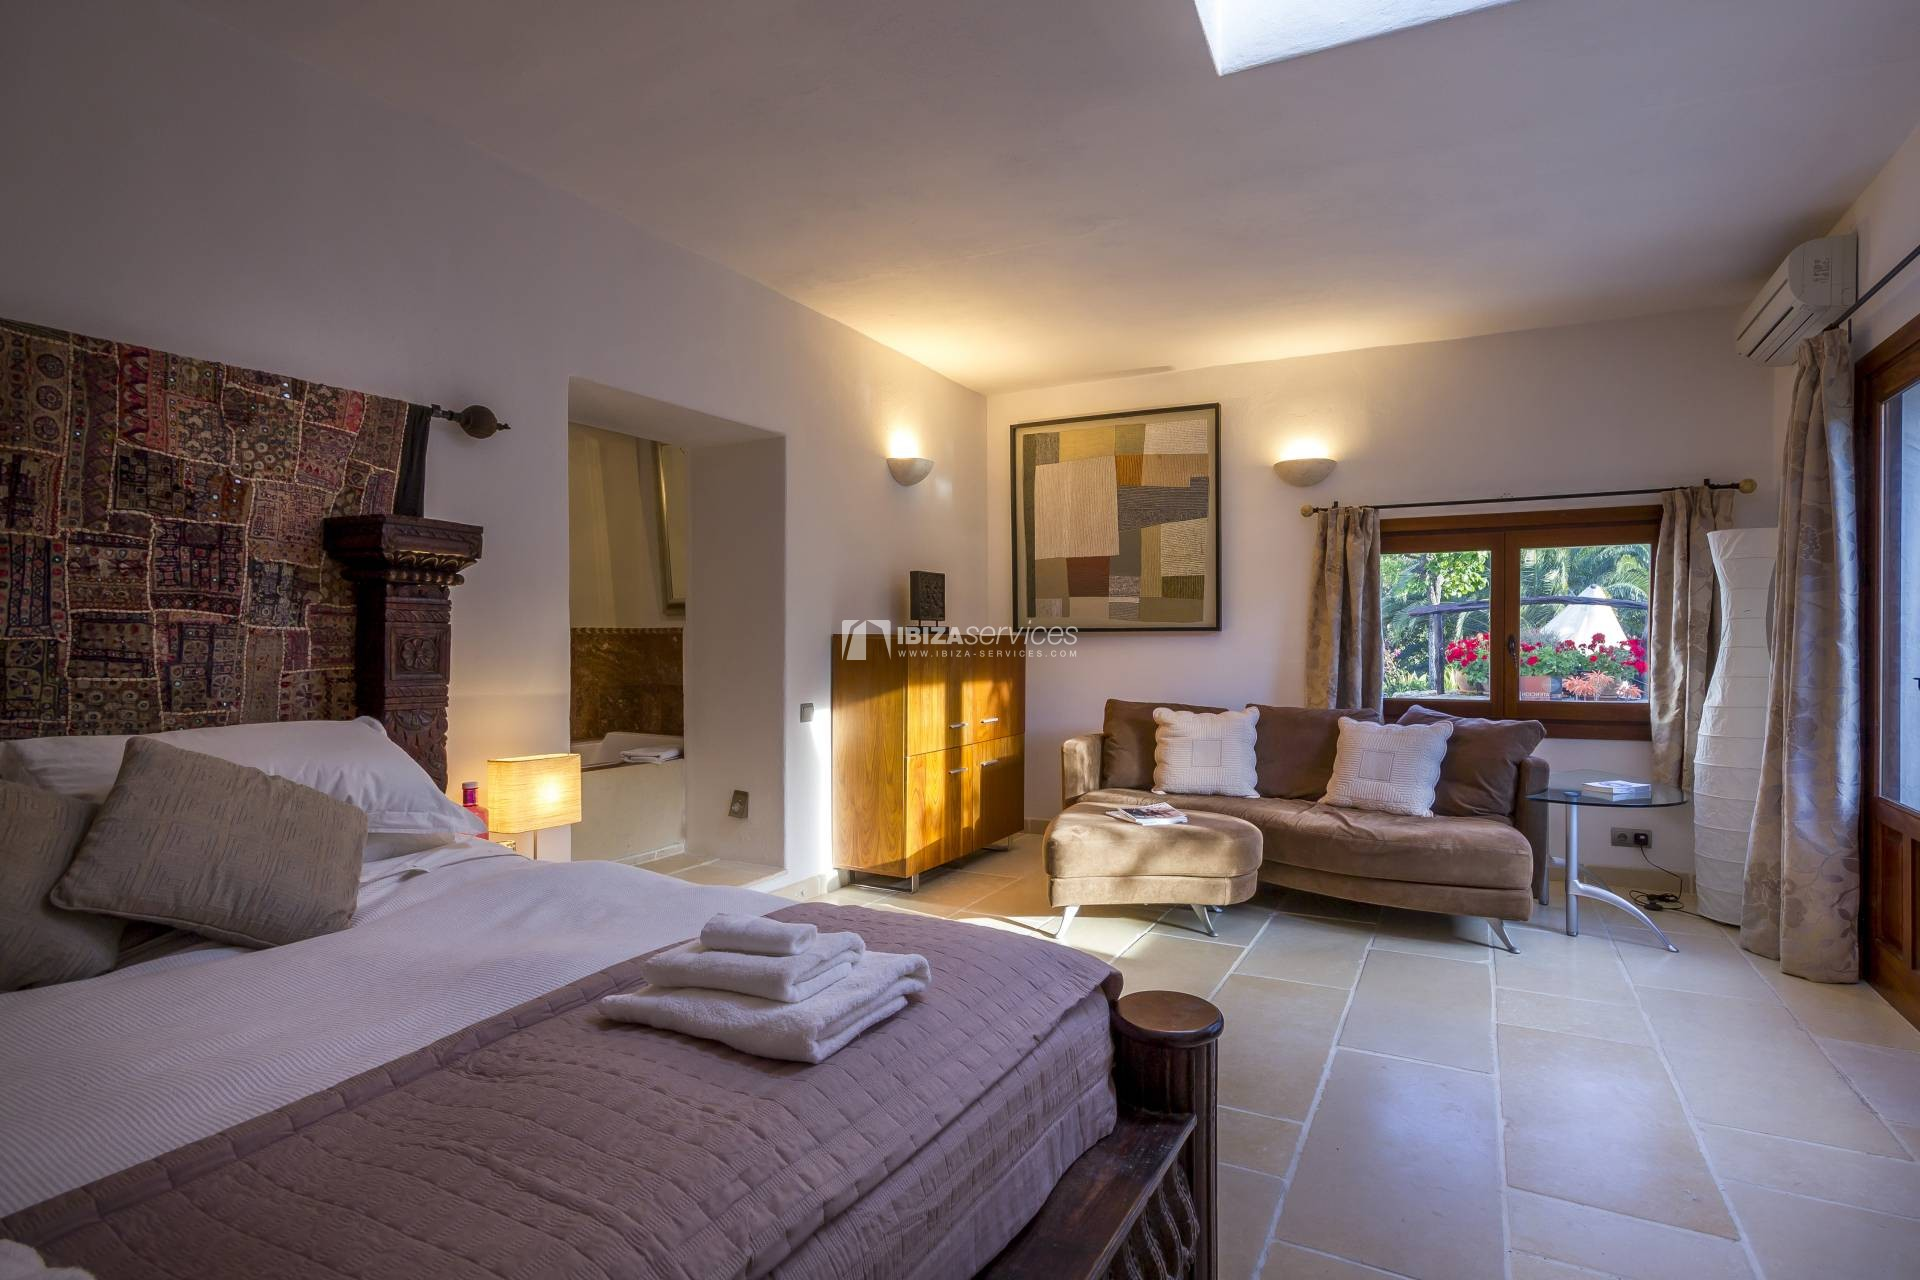 Beautifully finca located between St gertudis and San lorenzo perspectiva 29